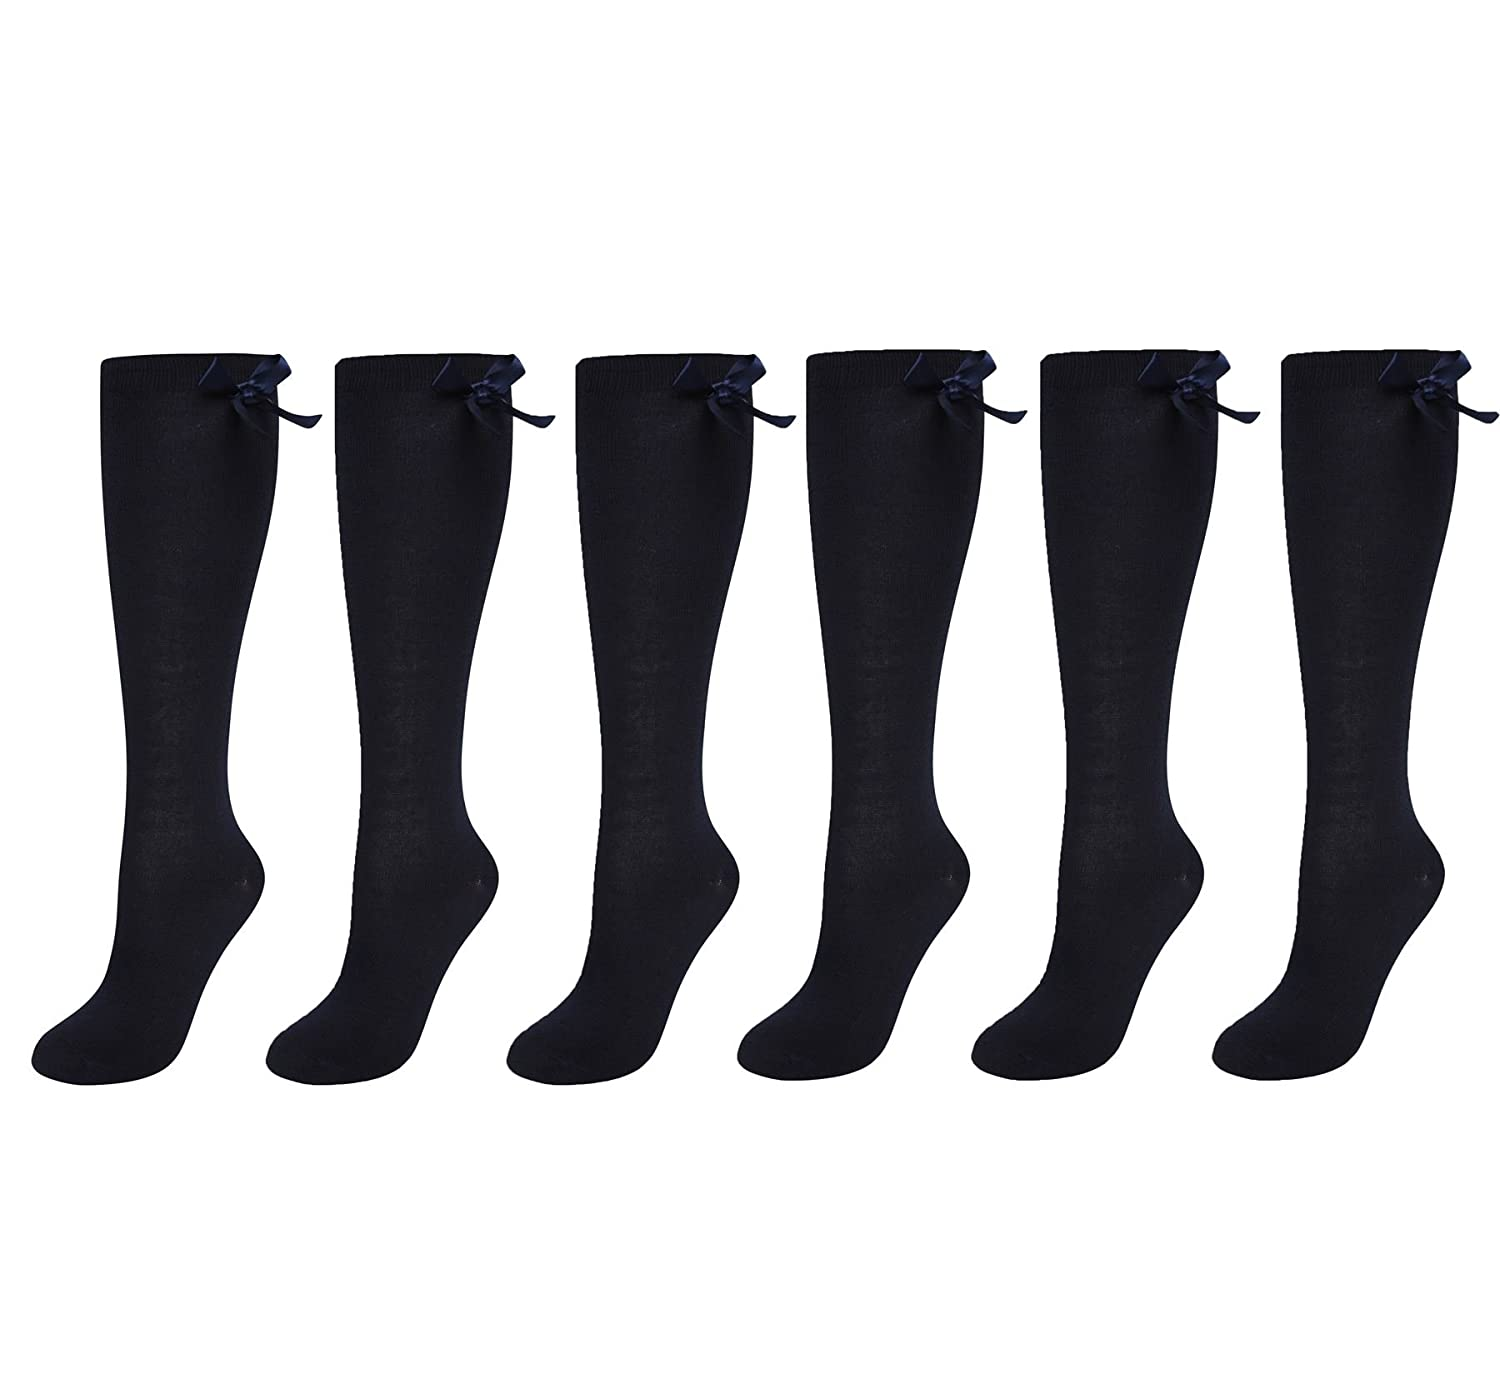 6 Pairs Of Girls Bow Knee High Socks, White Grey Black Navy Long School Socks With Ribbons Bows RZK TEXTILES